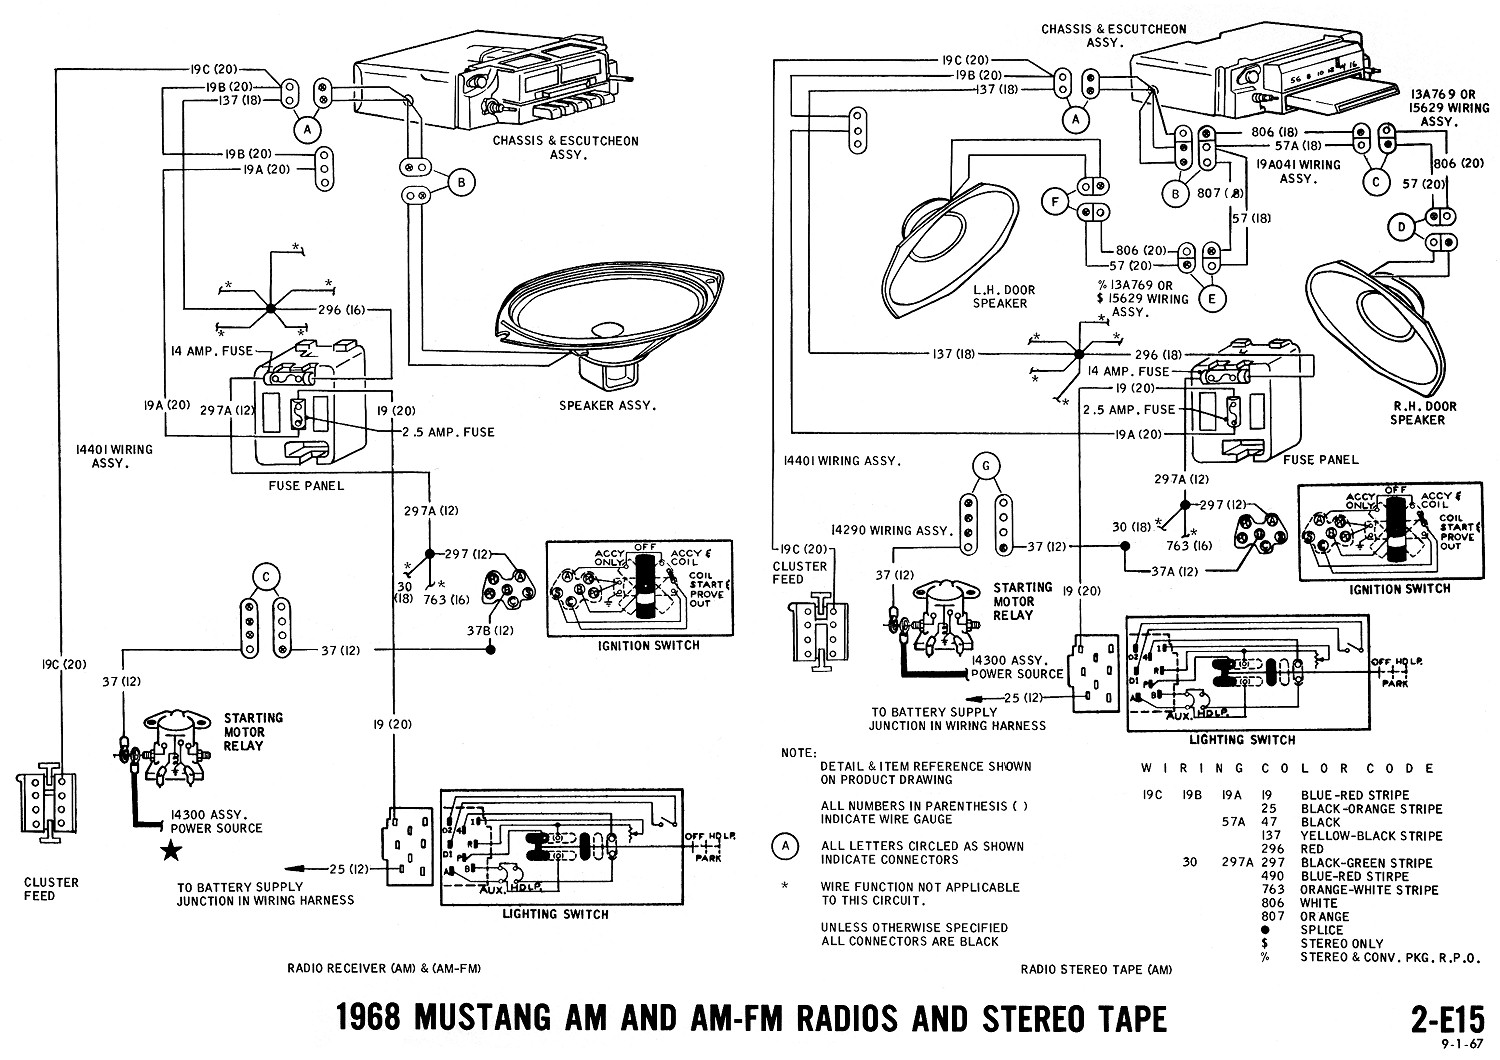 1968 mustang wiring diagrams evolving software rh peterfranza com mustang wiring diagram 1966 mustang wiring diagram 2015